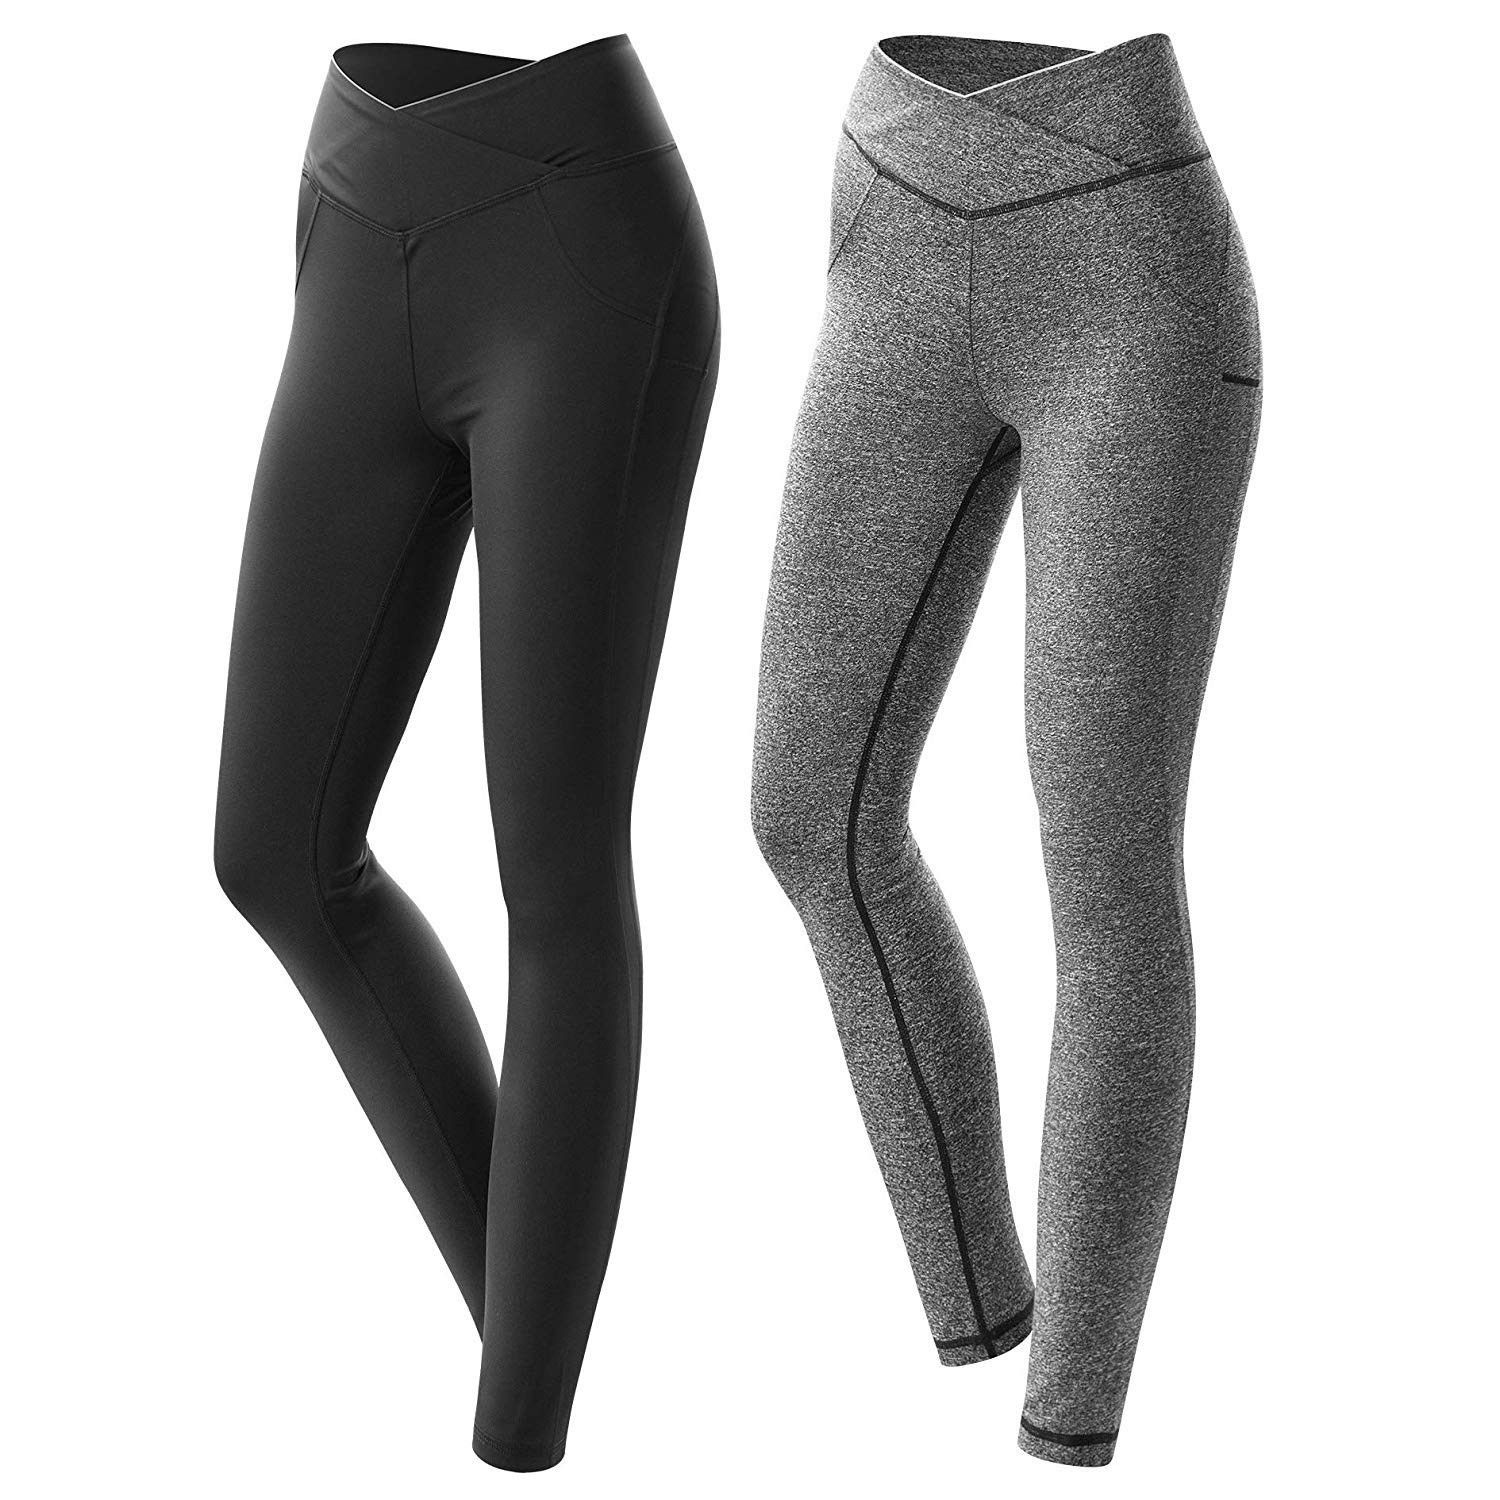 Workout Leggings Compression Streamlined Fitness - Grey T185 - CG18KC4YE4R - Sports & Fitness Clothi...